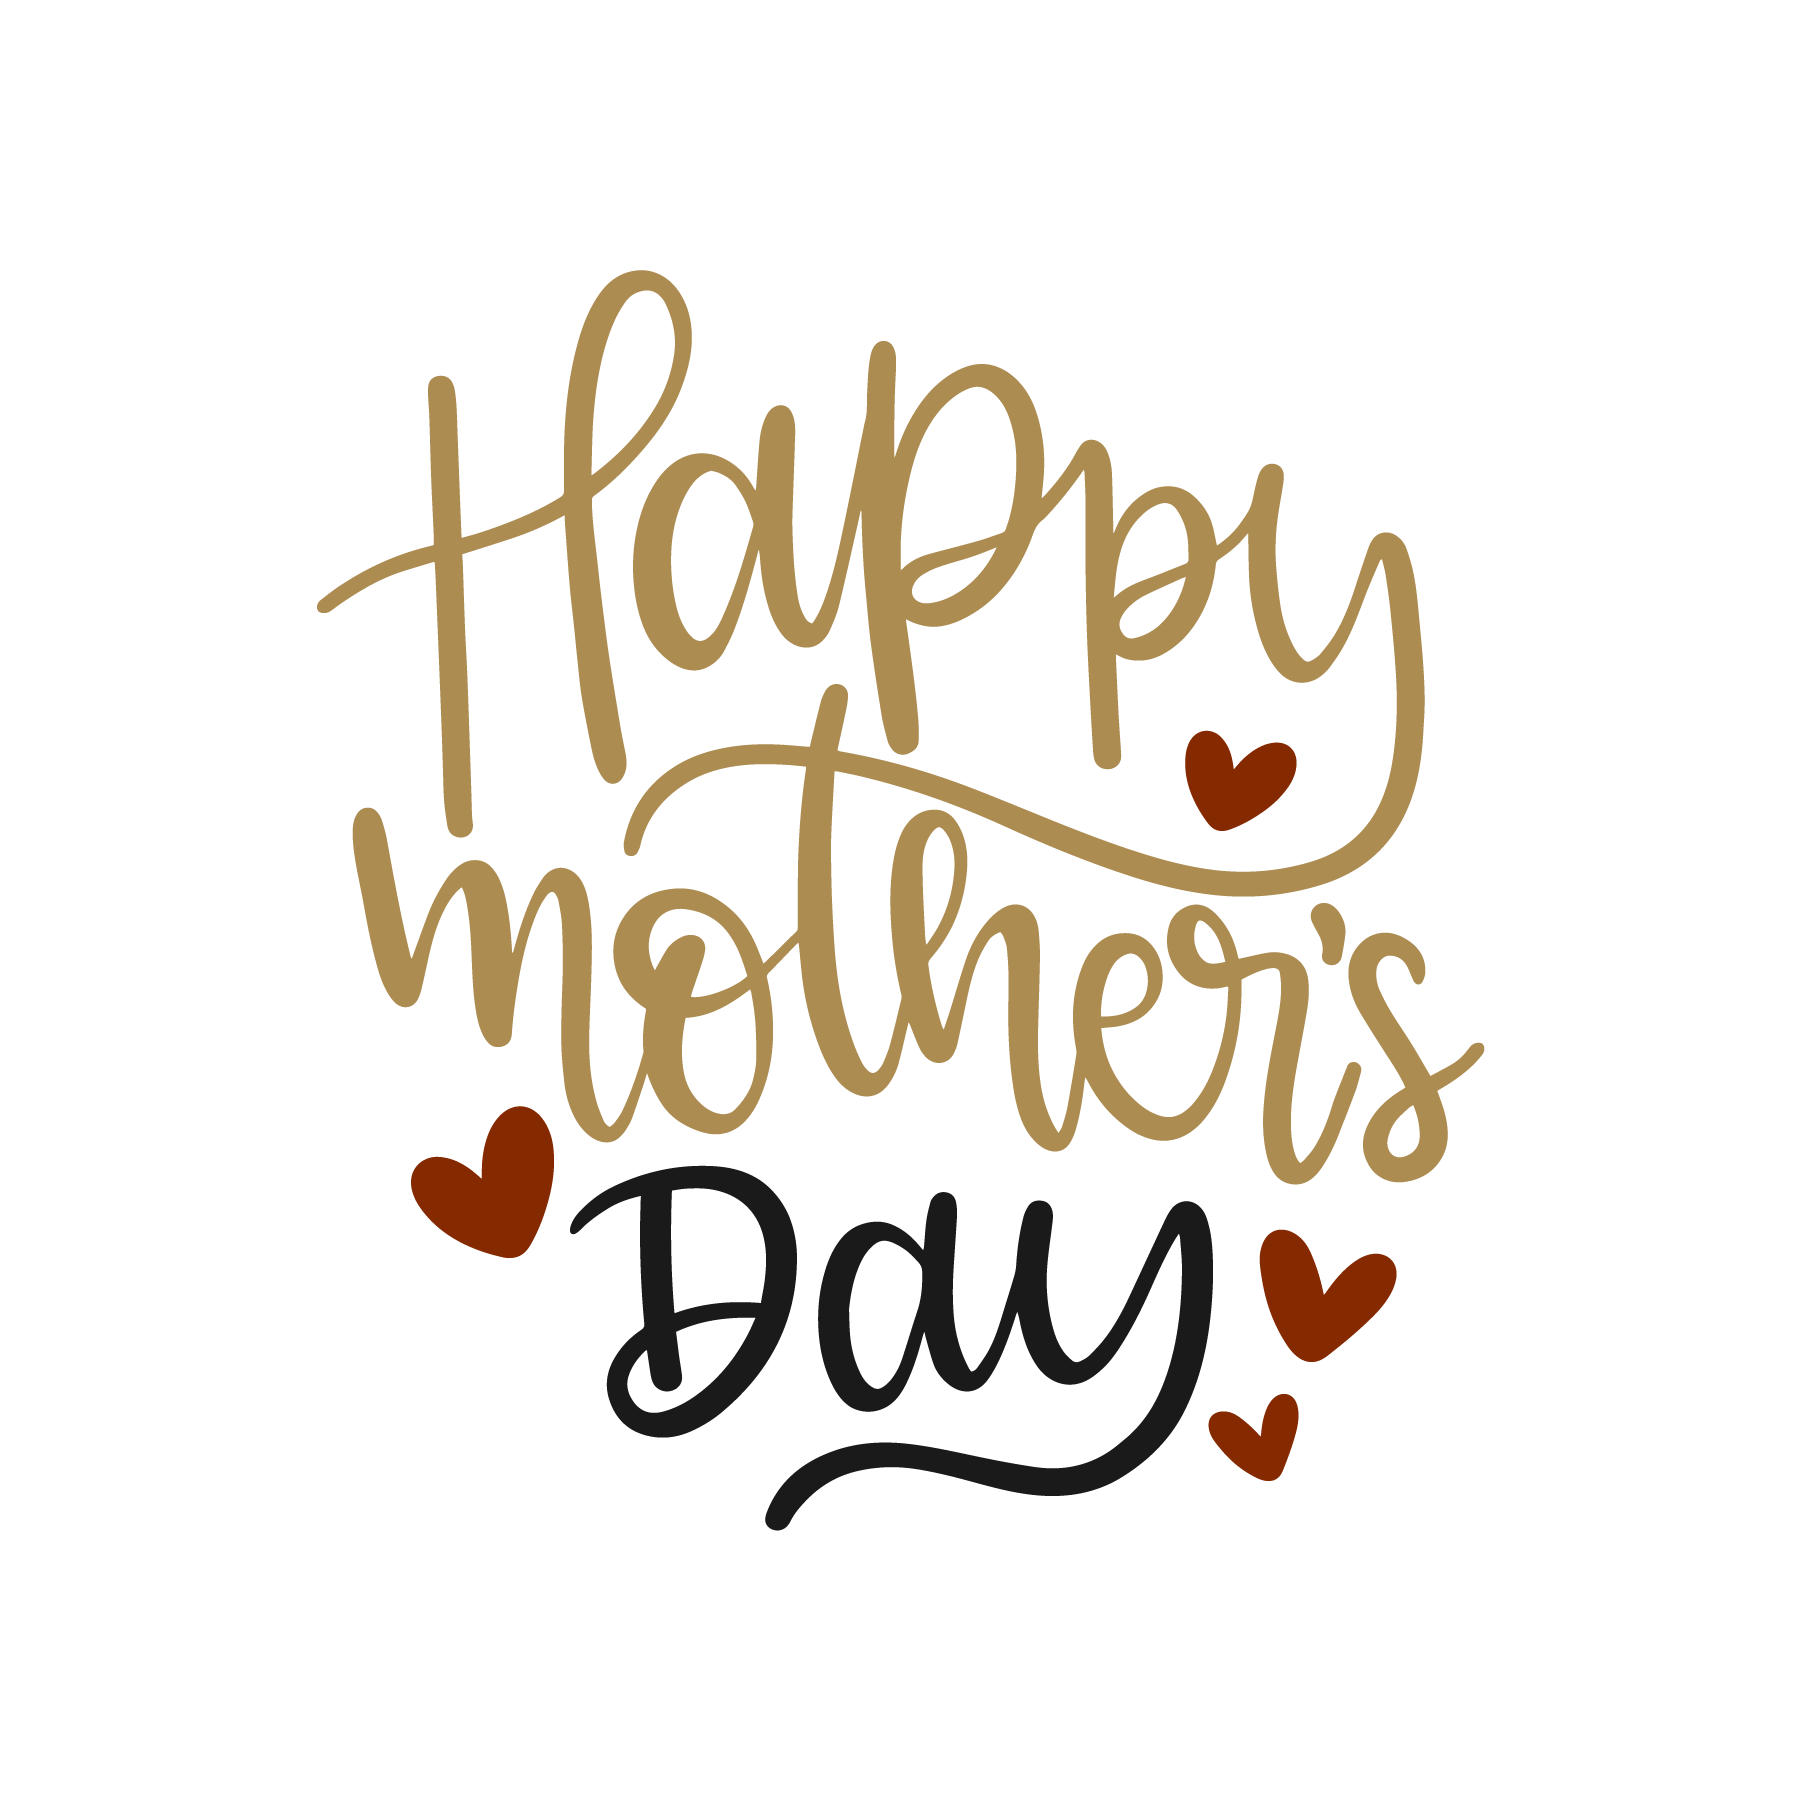 Free Product tags mothers day gift bagmothers day designmoms daymothers day gift tagmothers day cricutmothers day svggift bag designgift box designgift crate designmommys day. Pin De Iram Sekky En Lettering Feliz Dia De La Madre Tarjetas A Mano Tarjetas Para Mama SVG, PNG, EPS, DXF File